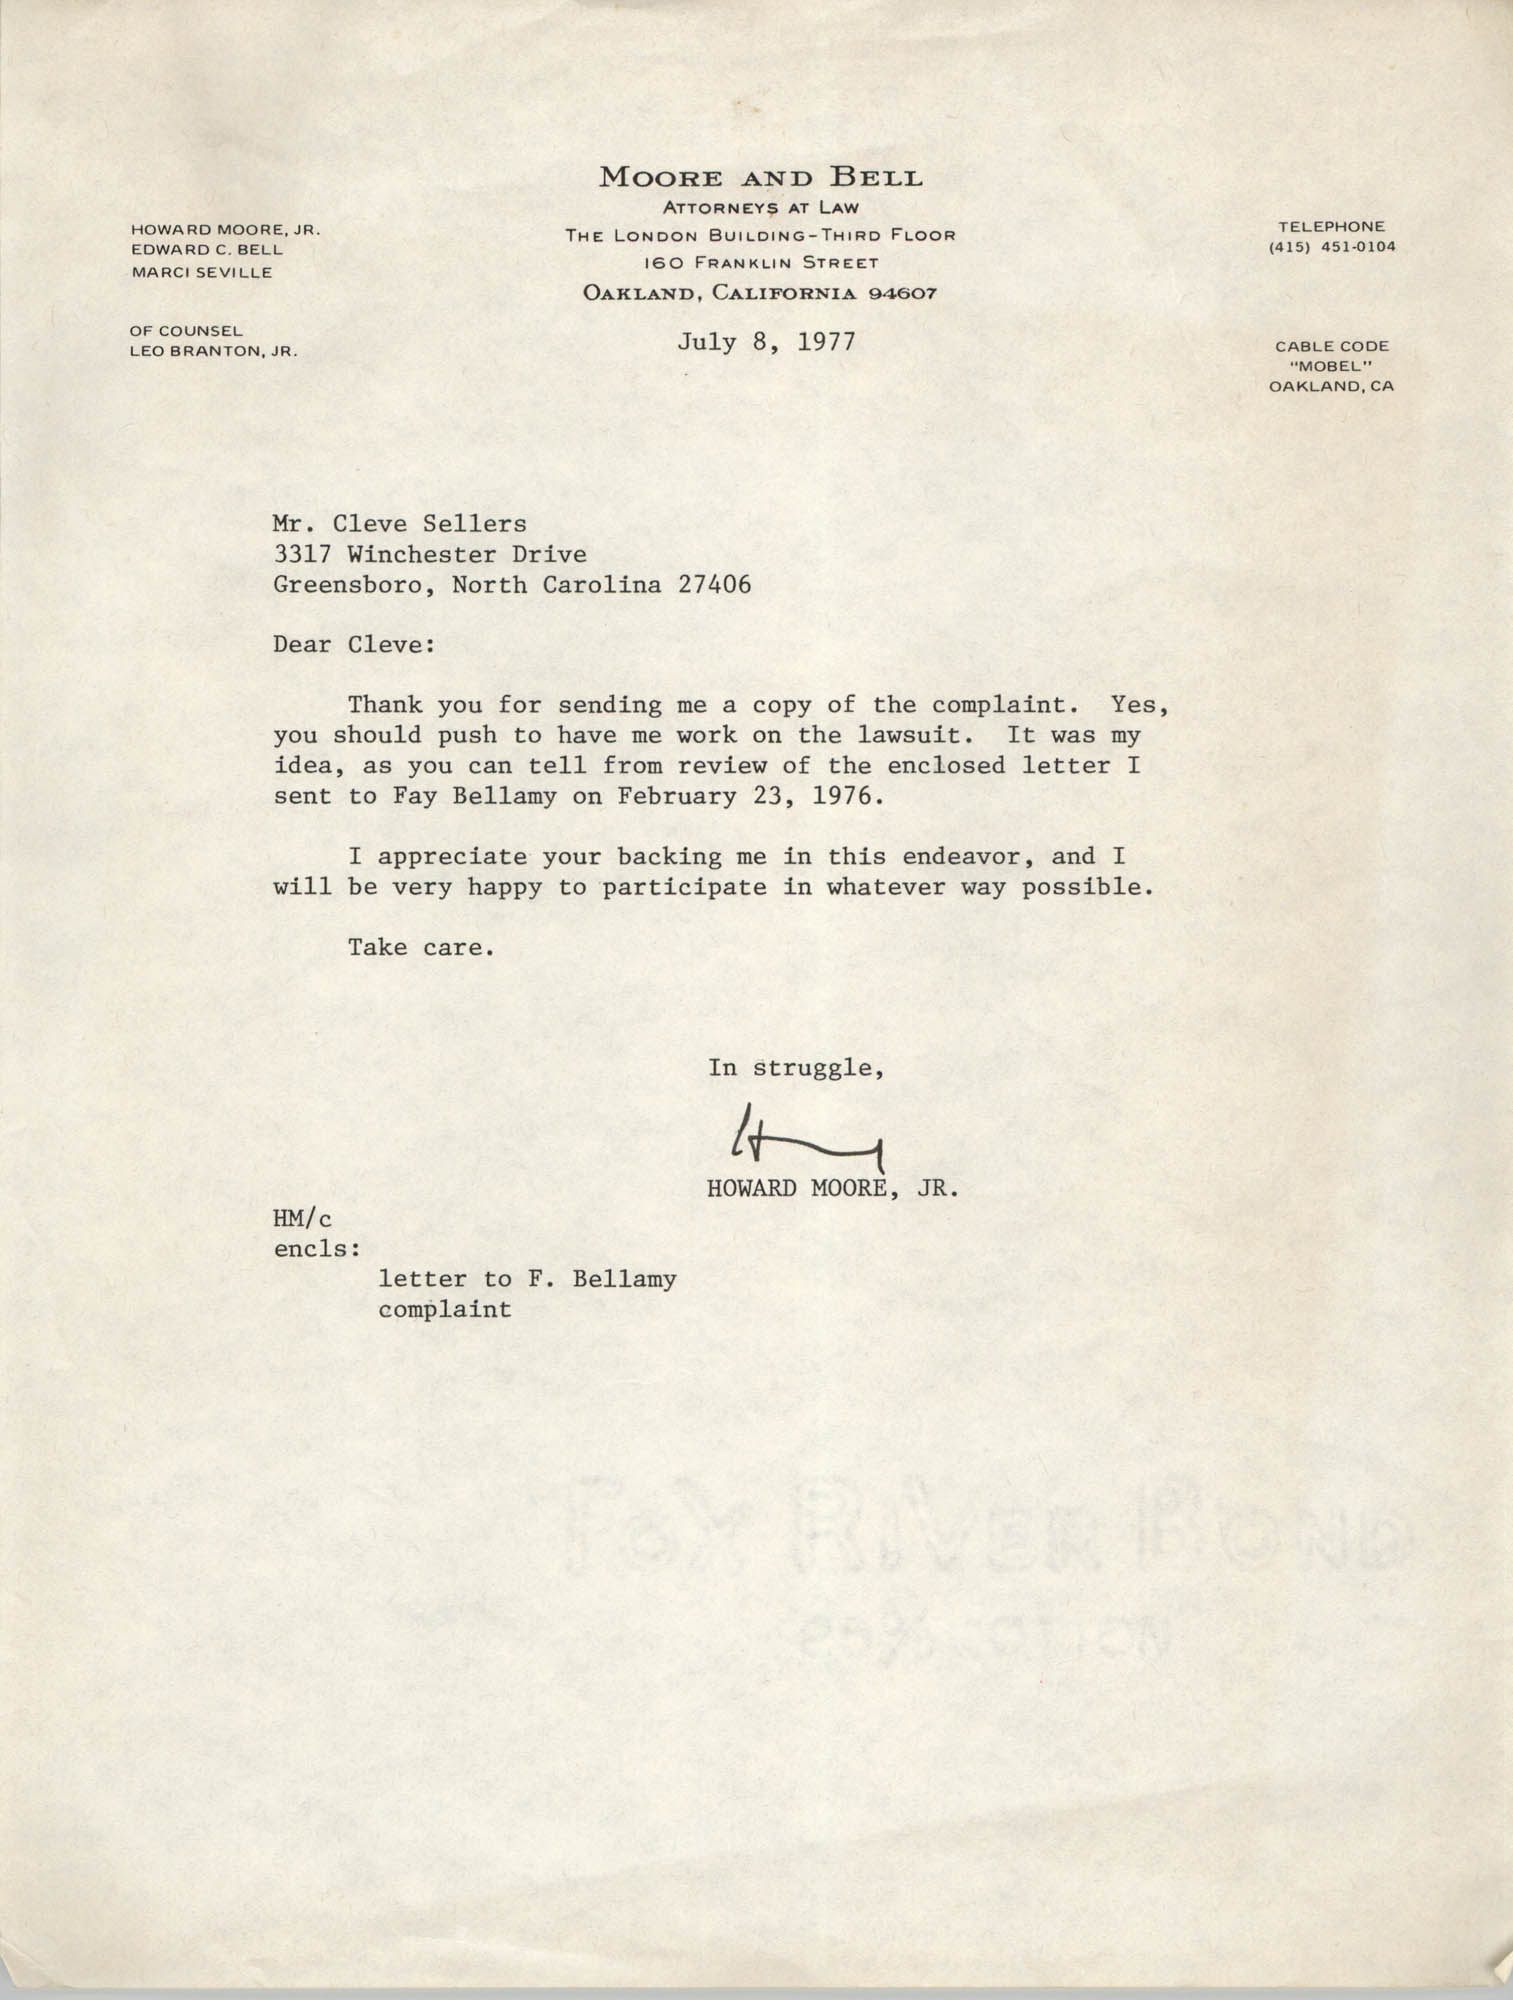 Letter from Howard Moore, Jr. to Cleveland Sellers, July 8, 1977